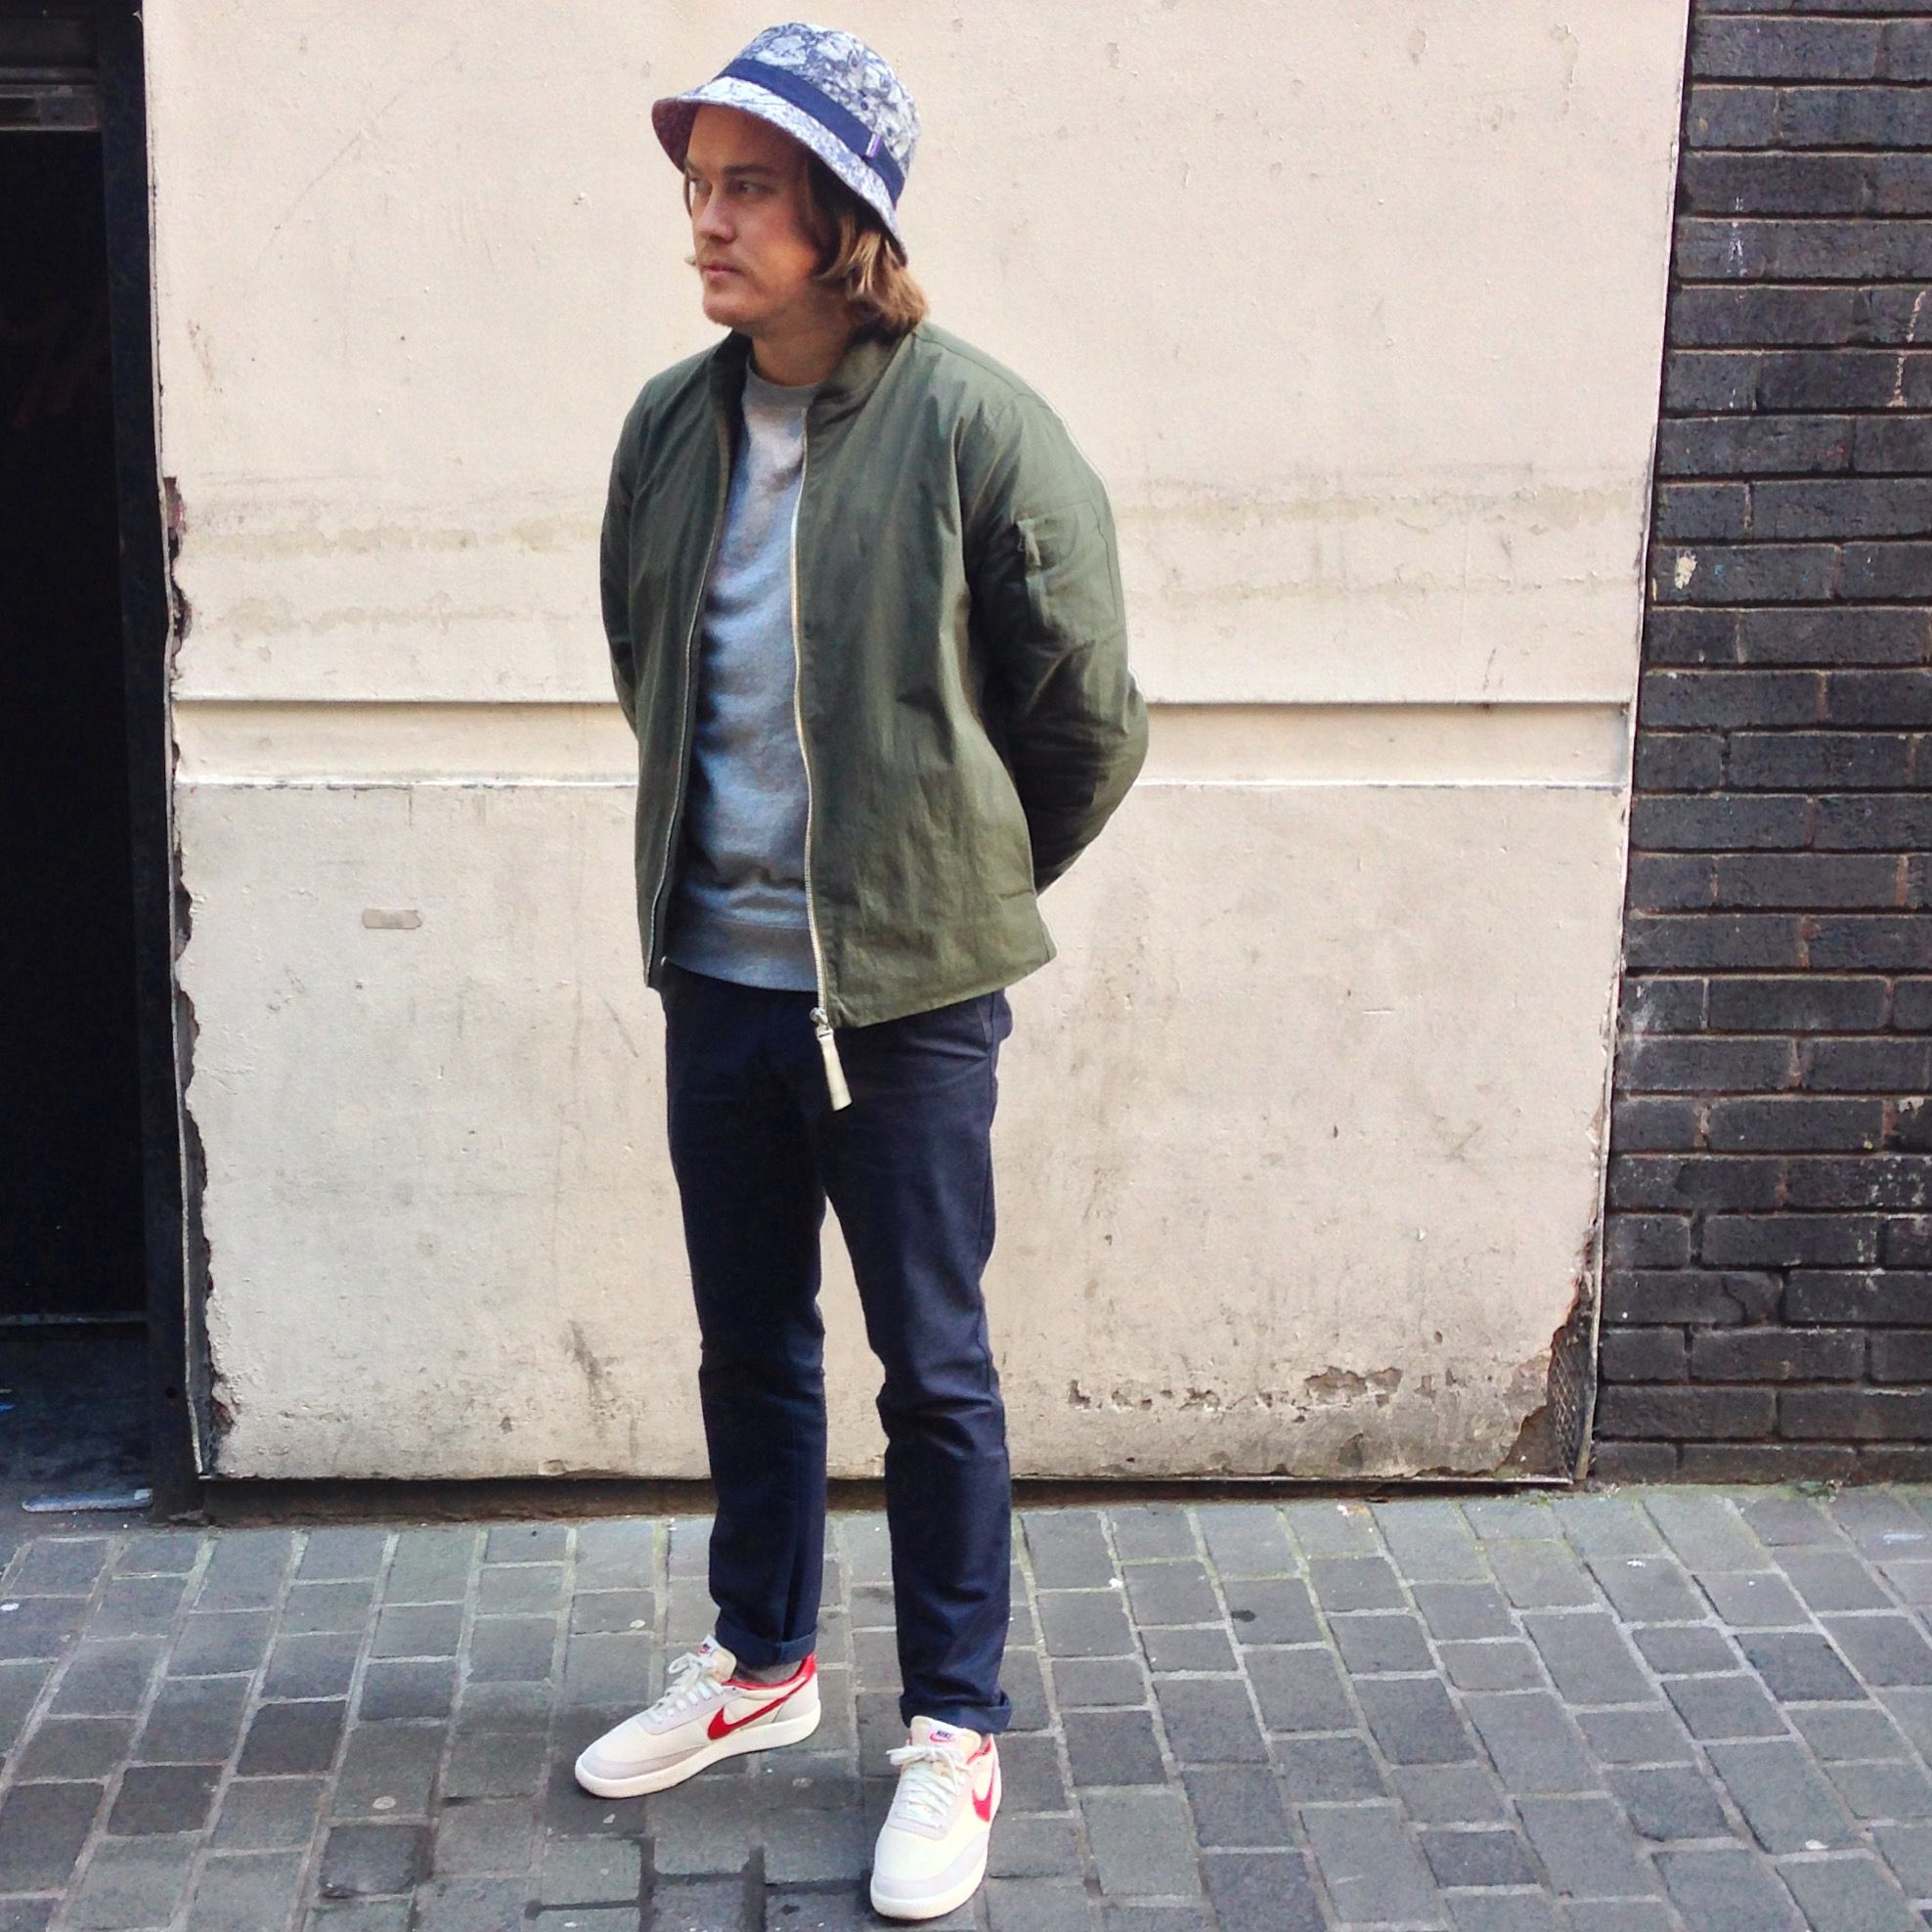 bec5a25947 Chris wears; Norse Projects Ryan Ripstop Bomber Jacket, Sunspel Classic  Sweatshirt, Carhartt Sid Pants, Nike Killshot Vintage & Patagonia  Wavefearer Bucket ...